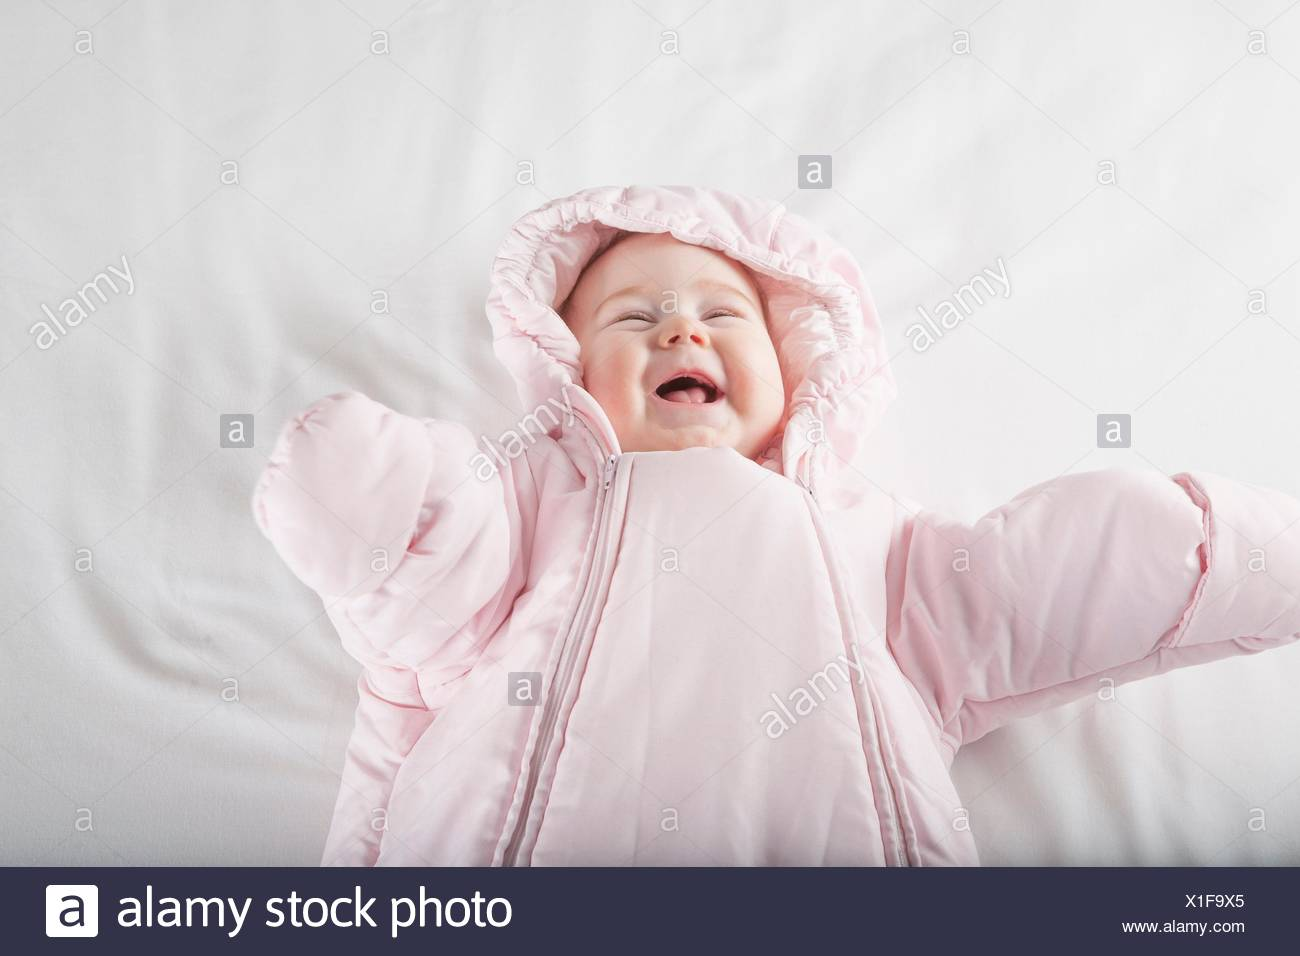 six months age cute baby dressed up in pink fluffy winter snowsuit snug hoodie clothes lying on white sheet bed smiling happy face. - Stock Image